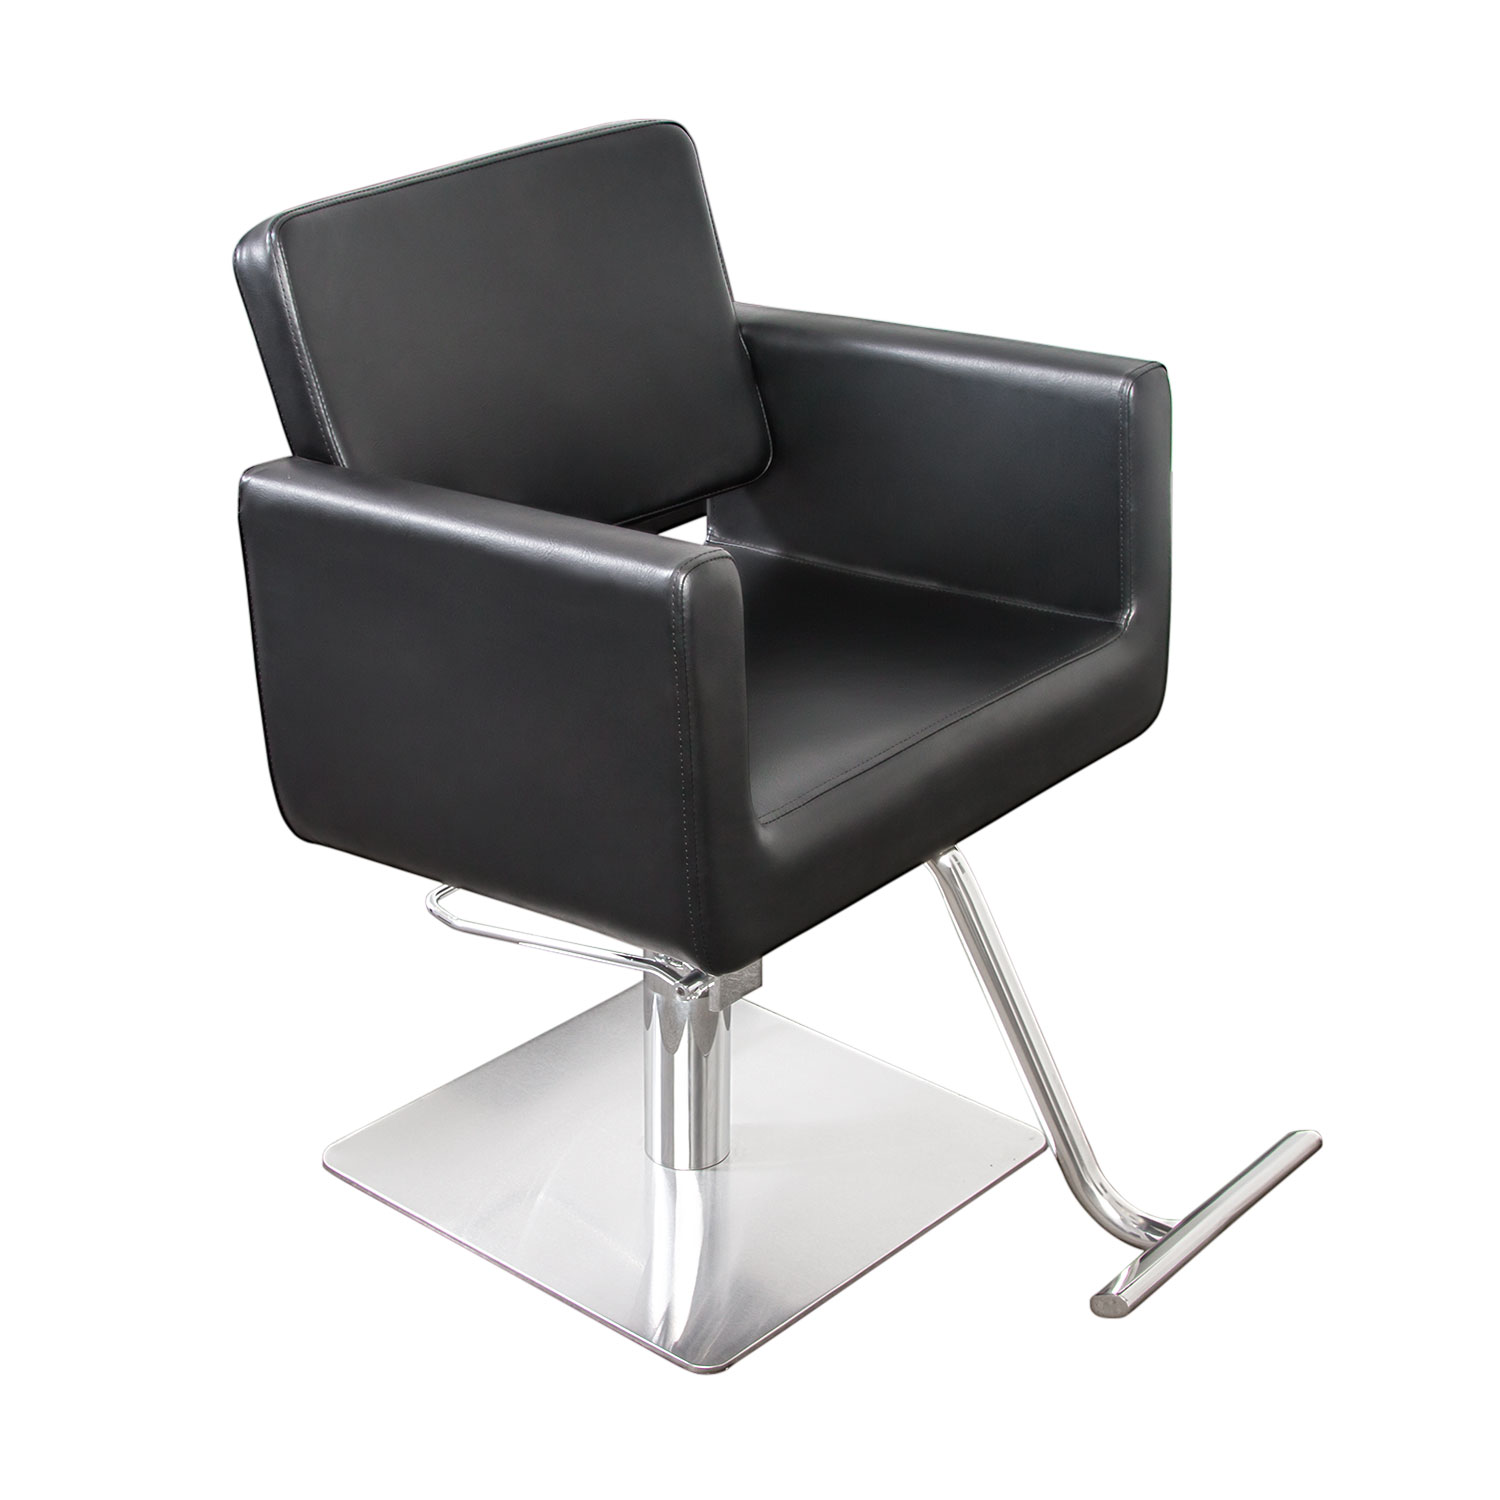 Maxton Square Stylist Chair alternative product image 1